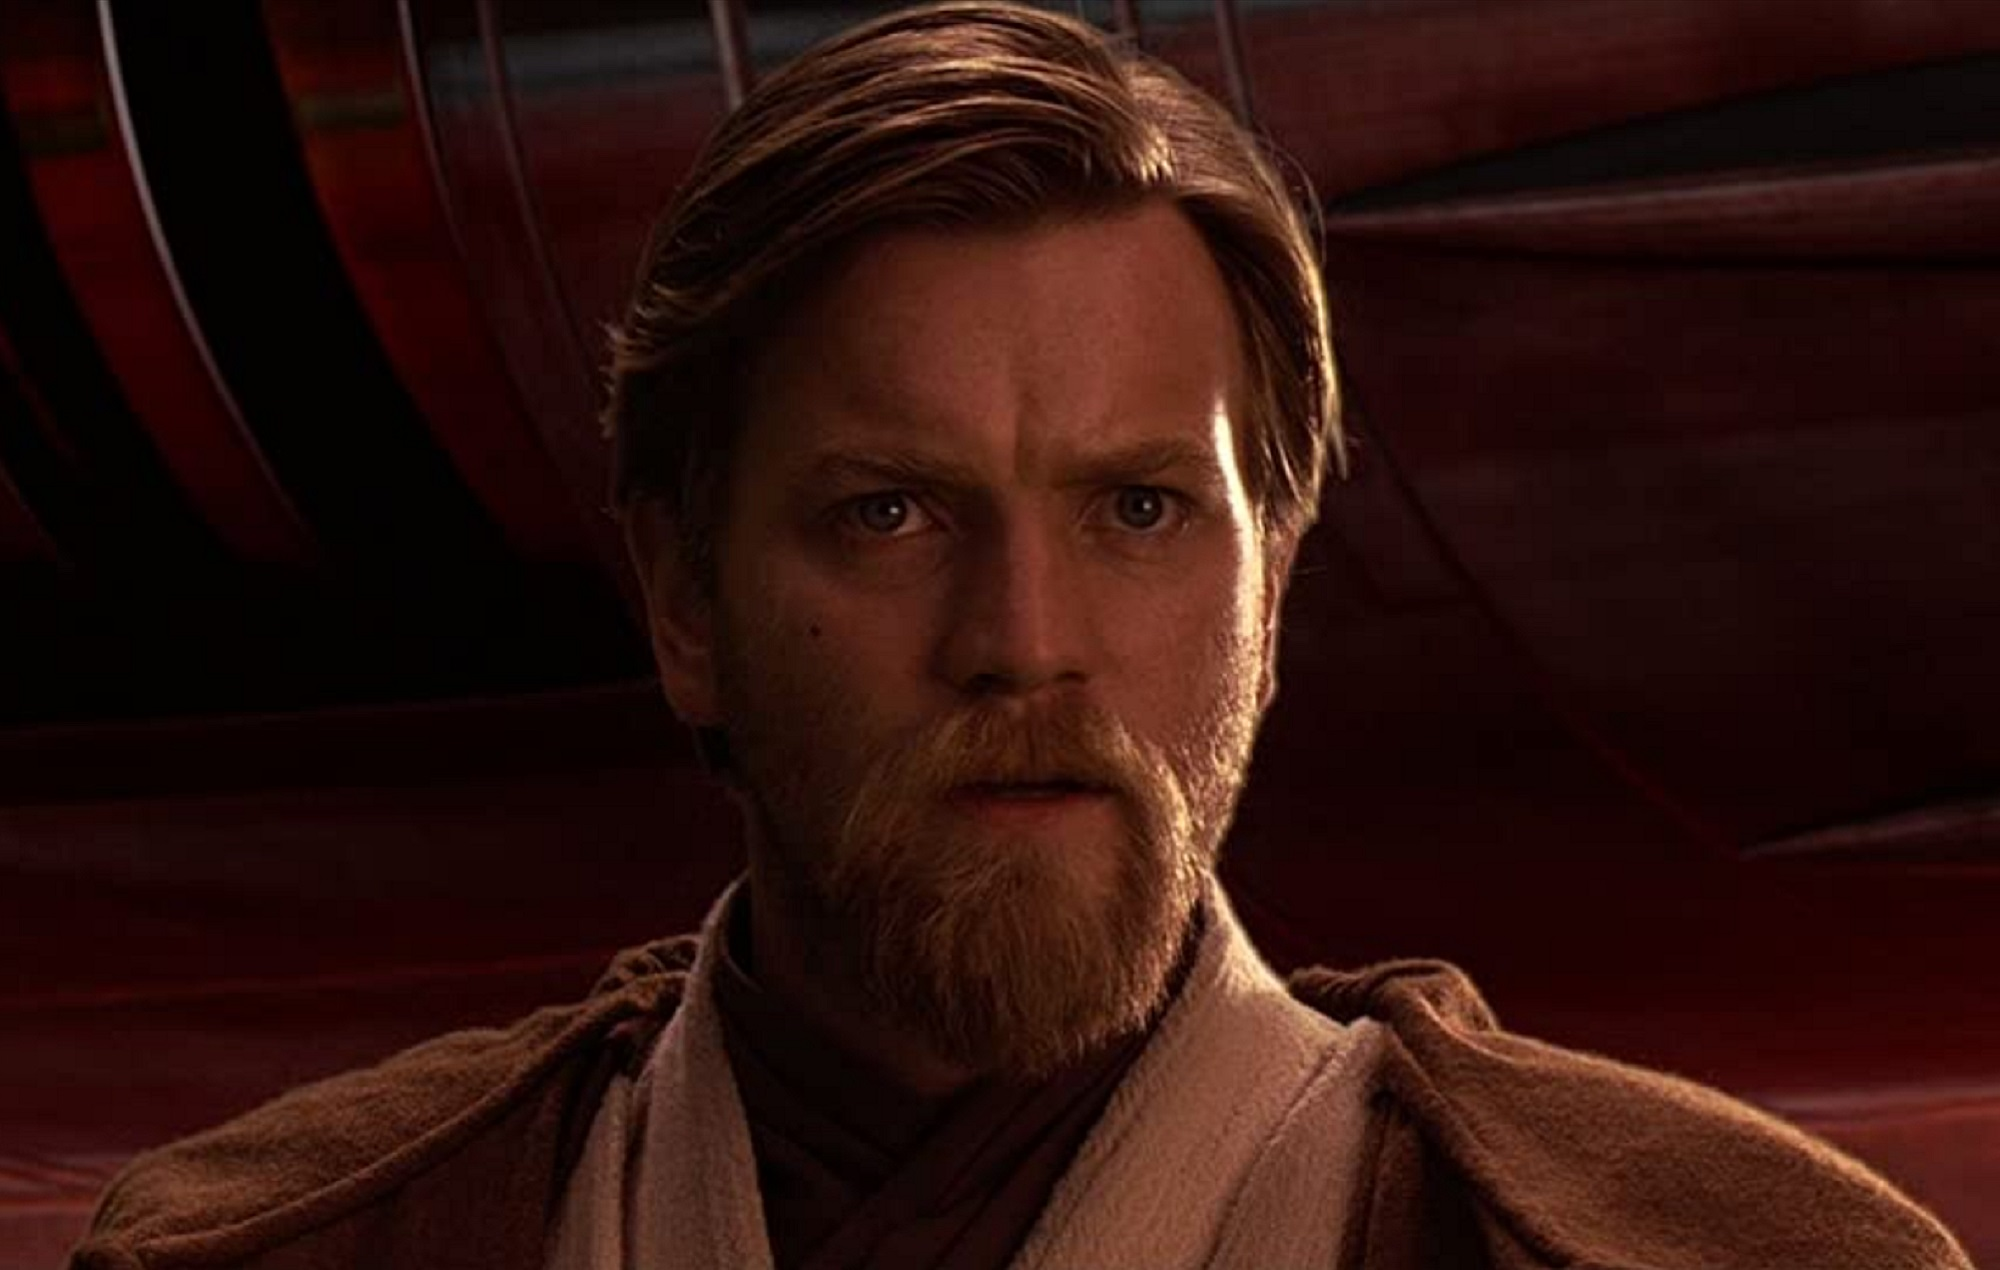 Ewan McGregor Kenobi Star Wars